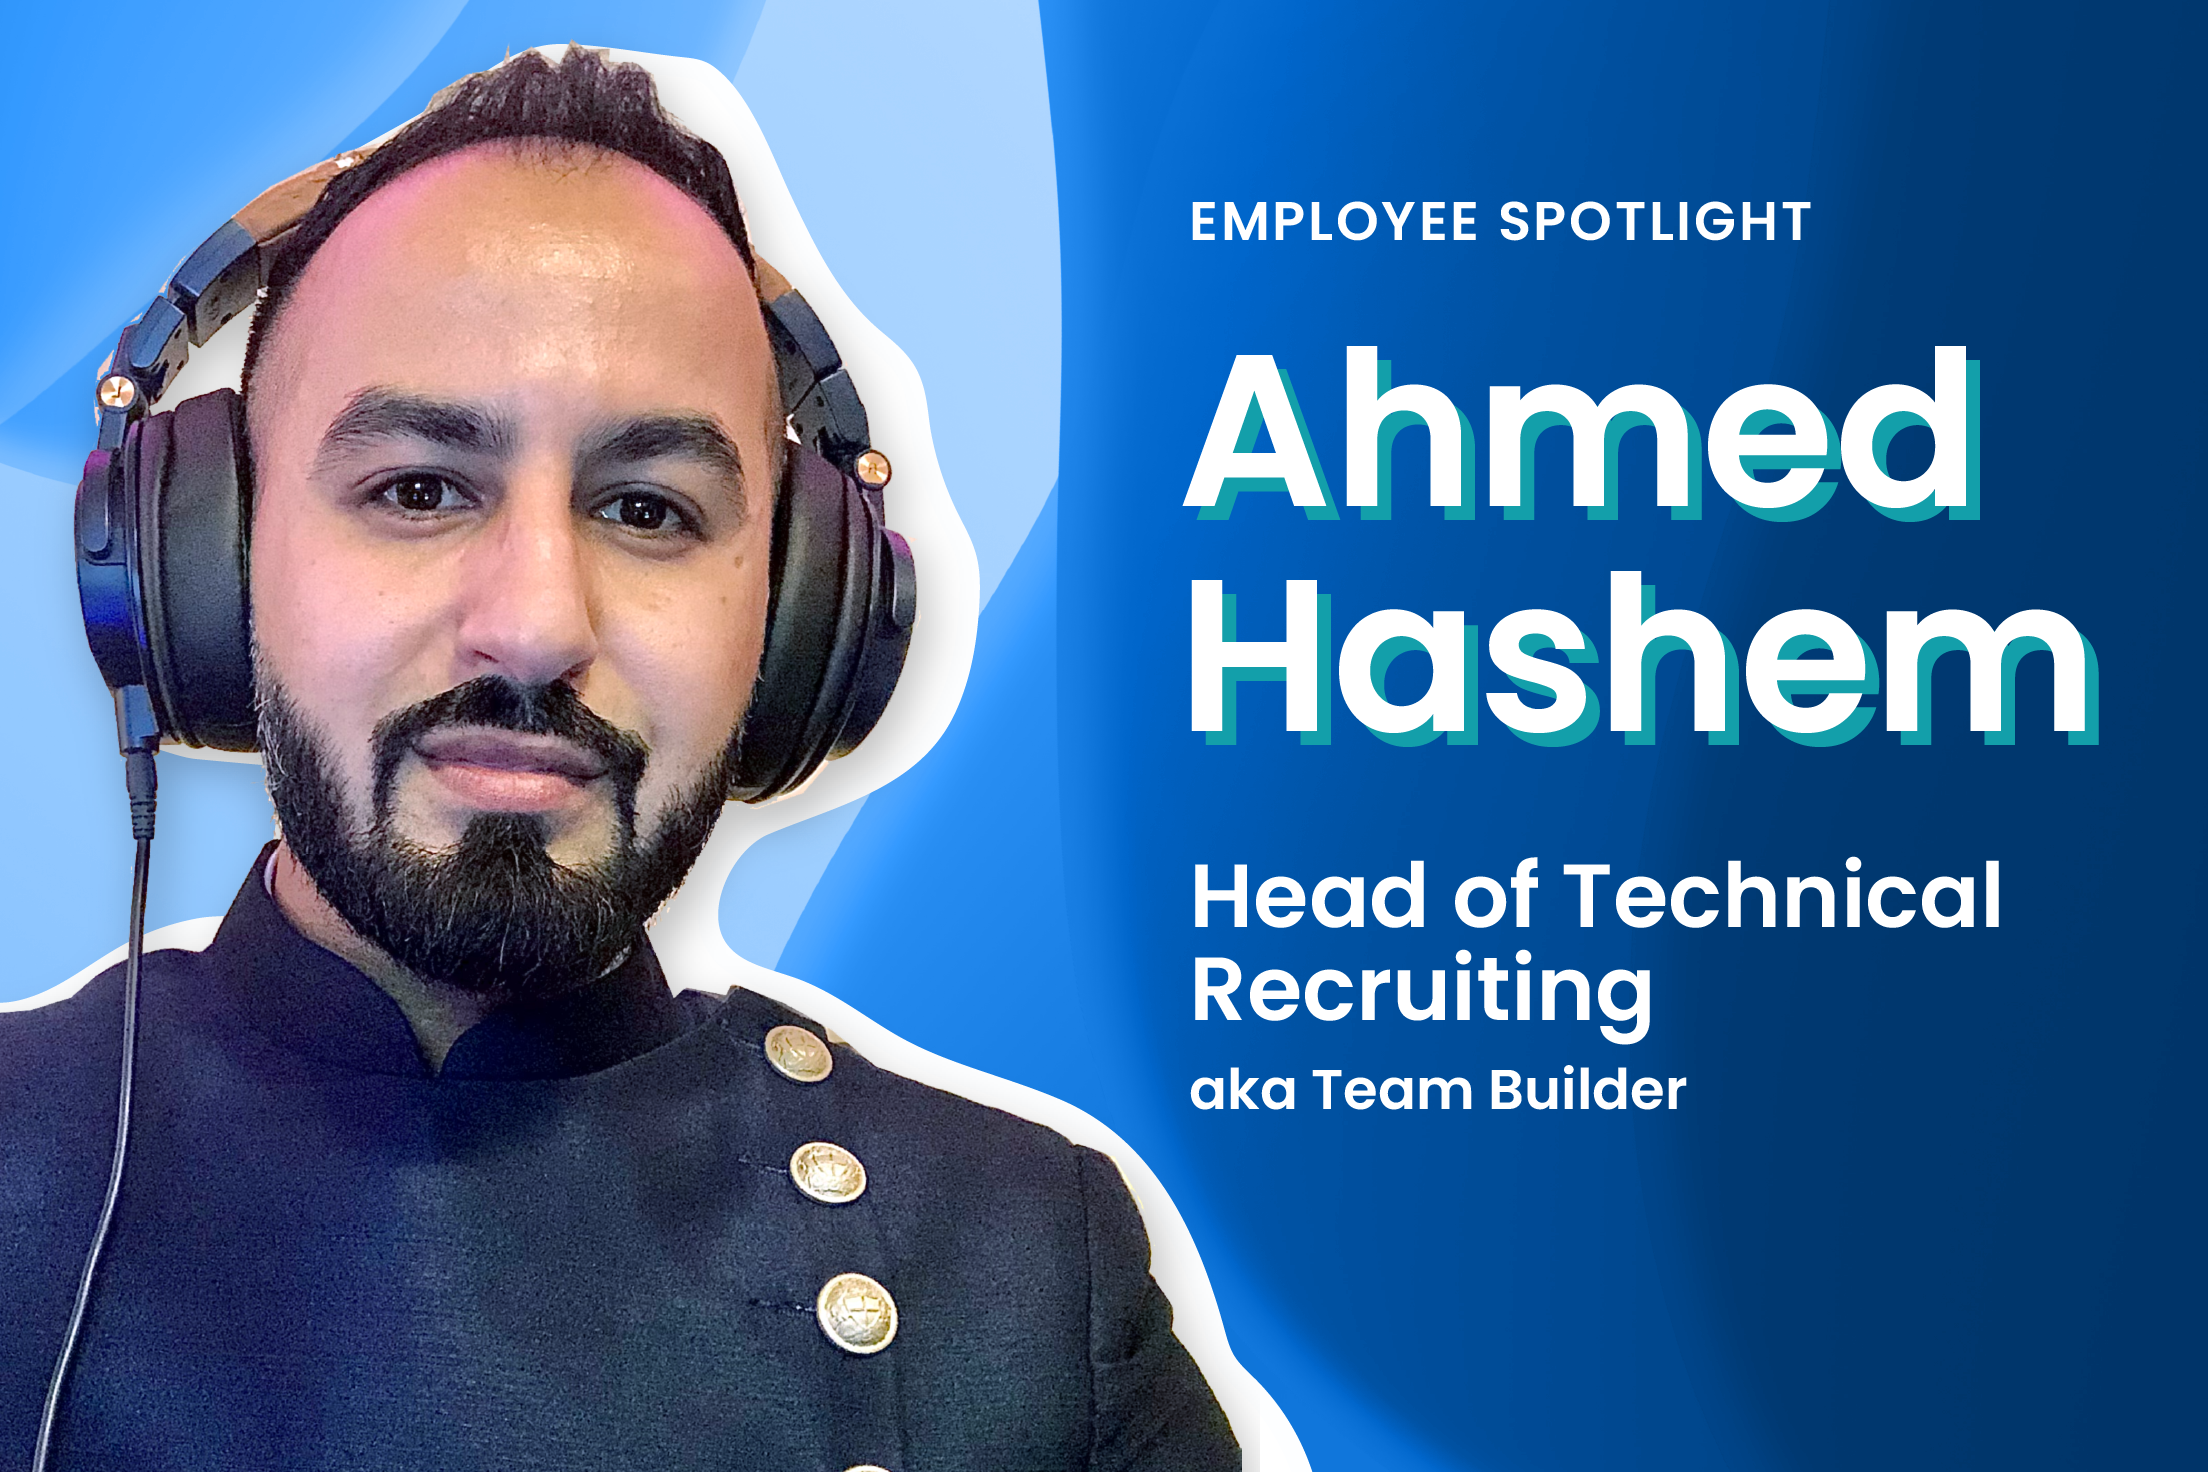 Ahmed Hashem joins the Lumanu team as the Head of Technical Recruiting! He comes to us from the Chan Zuckerberg Initiative, where he was the lead technical recruiter and helped build out the Engineering, Design, Research, Data Science, and Infrastructure teams.